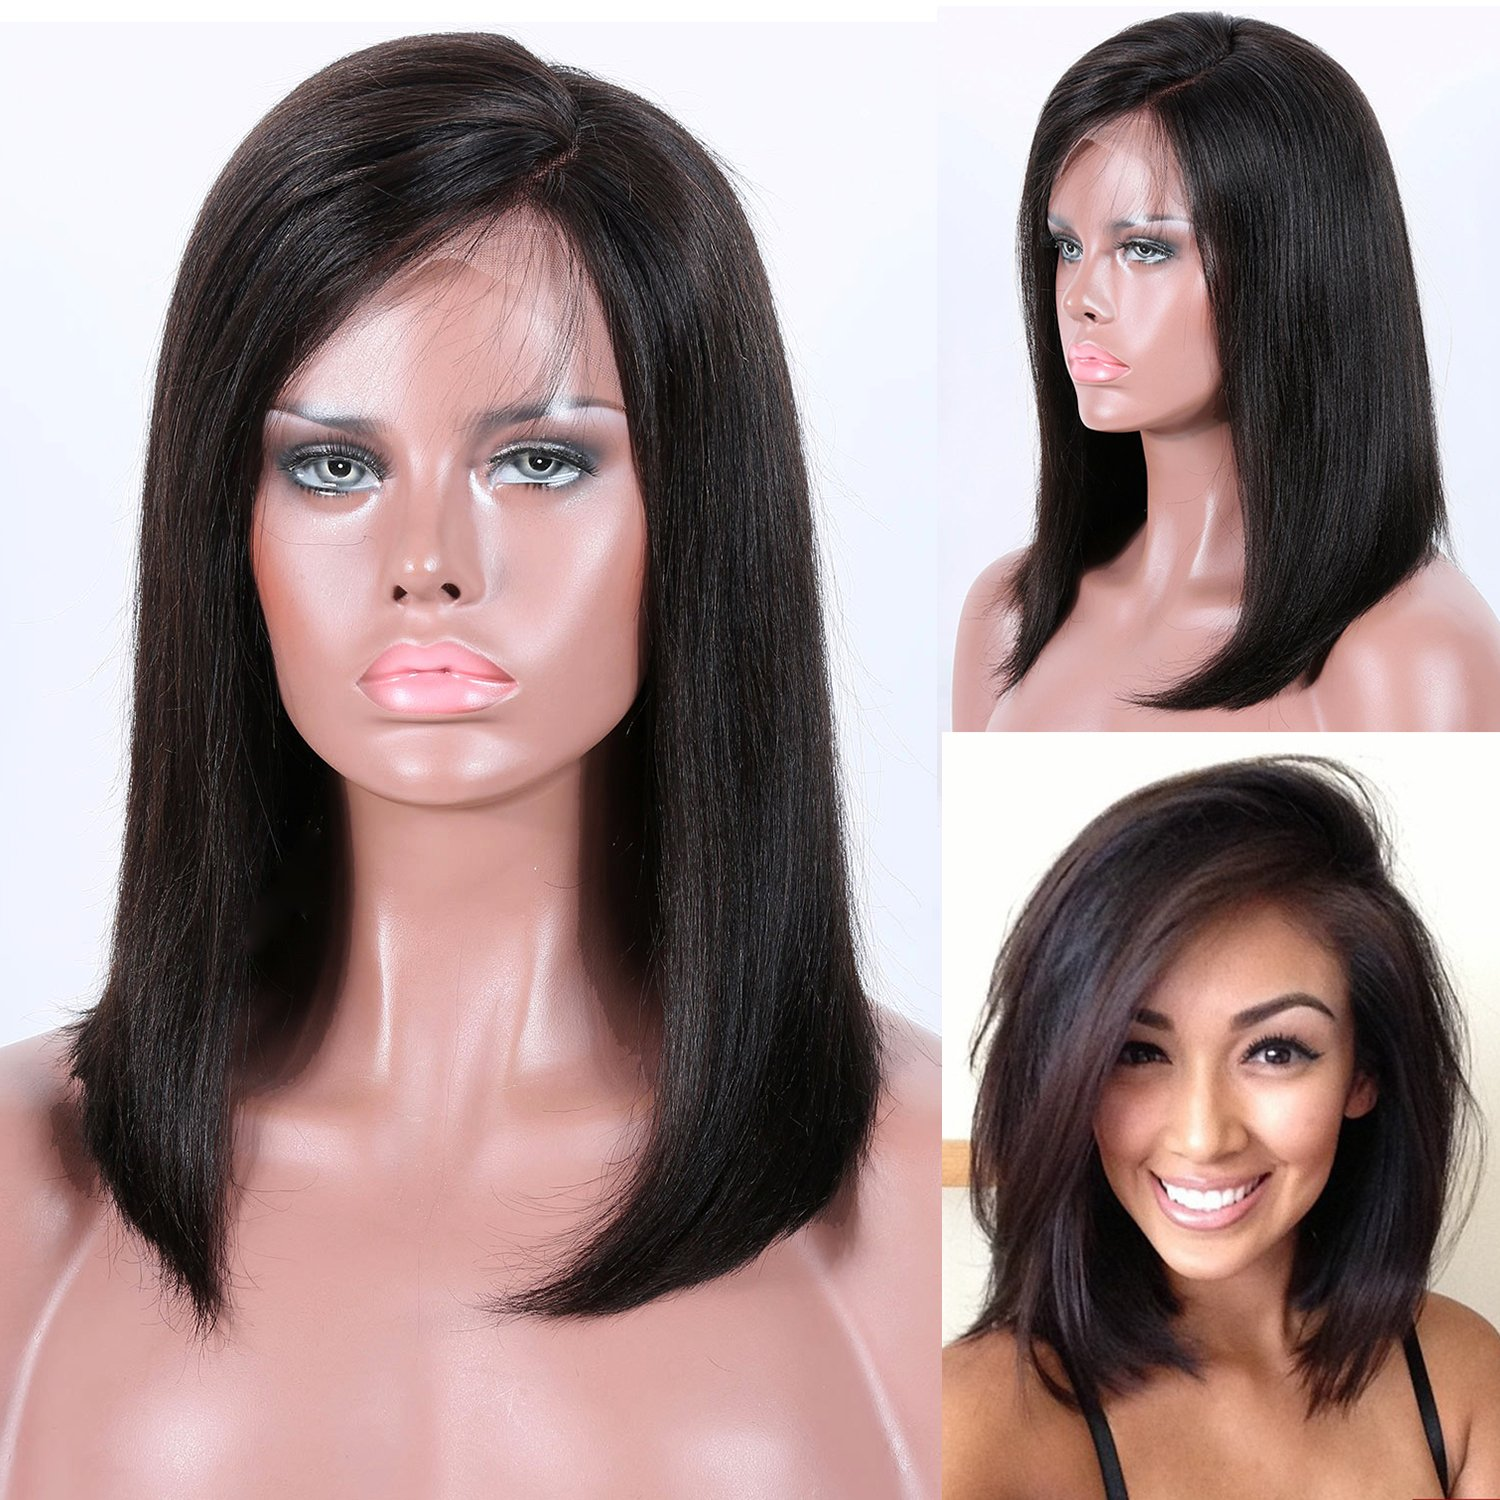 Amazon.com : Premier Bob Wigs Human Hair Lace Front Wigs Brazilian Remi Hair Short Human Hair Wigs with Baby 150% Density, 4.5 inch Deep Part Lace Front ...